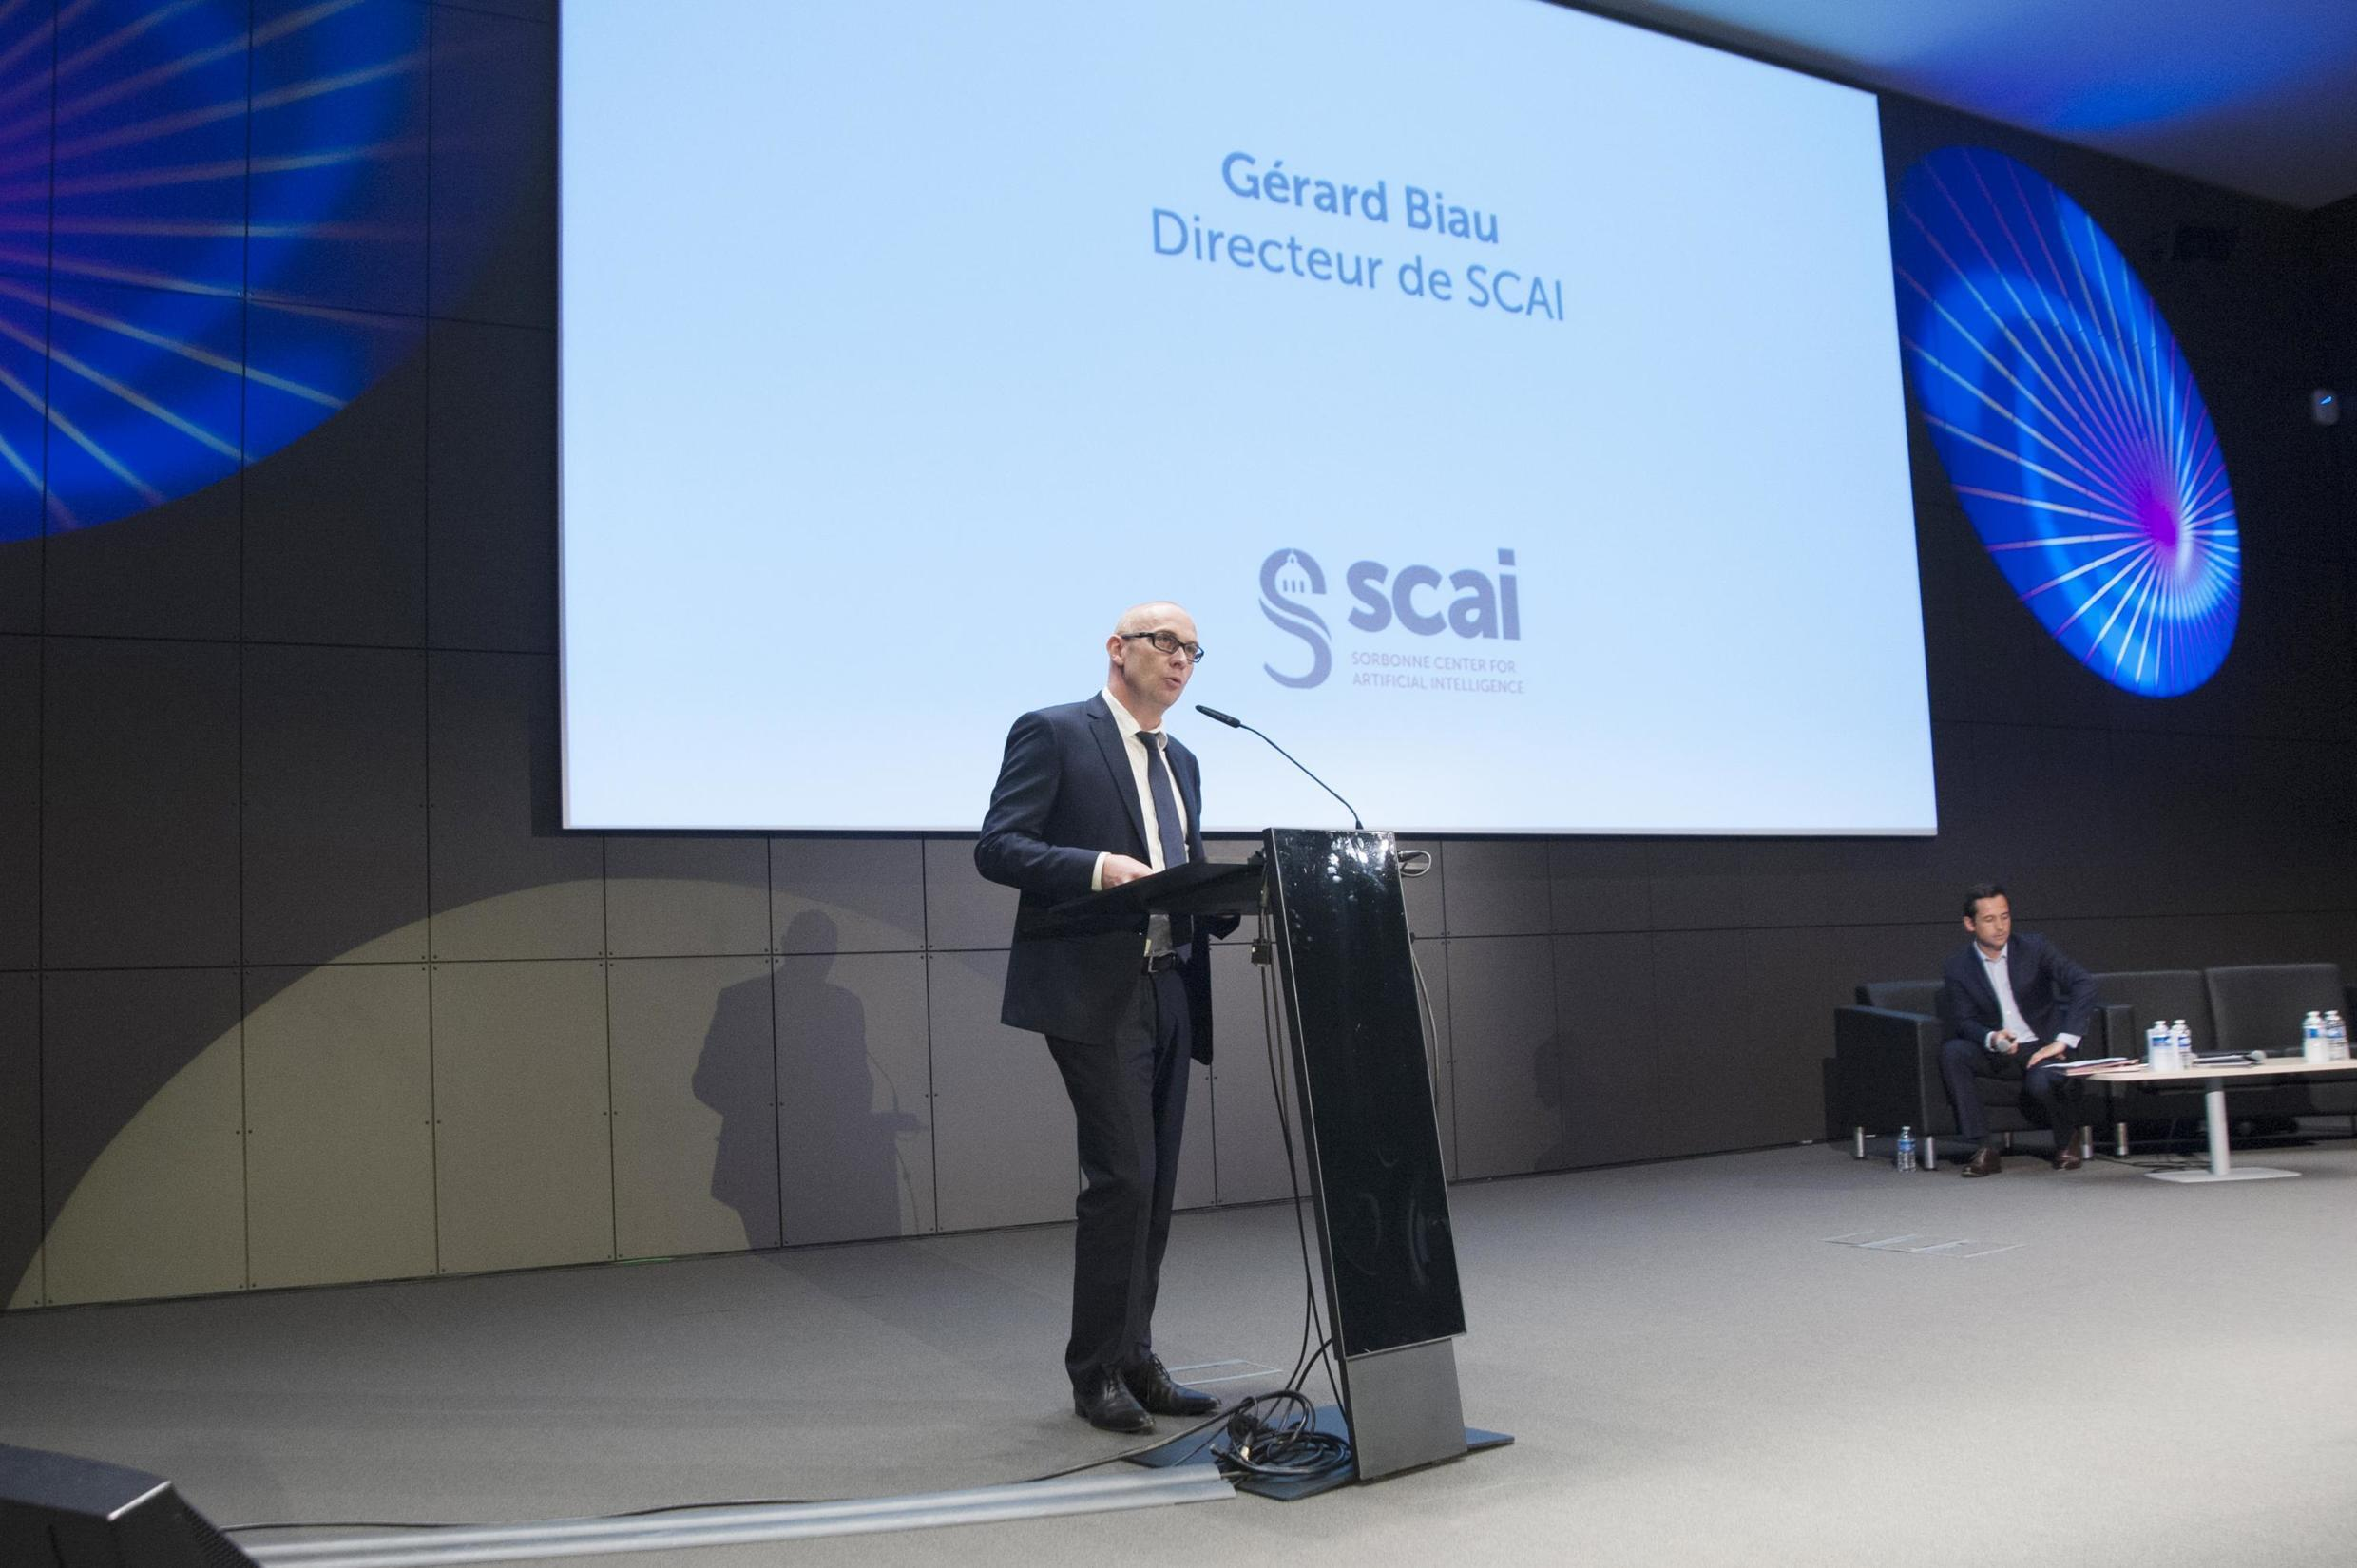 Professor Gerard Biau speaking during the inauguration of Sorbonne Centre for Artificial Intelligence in Paris.